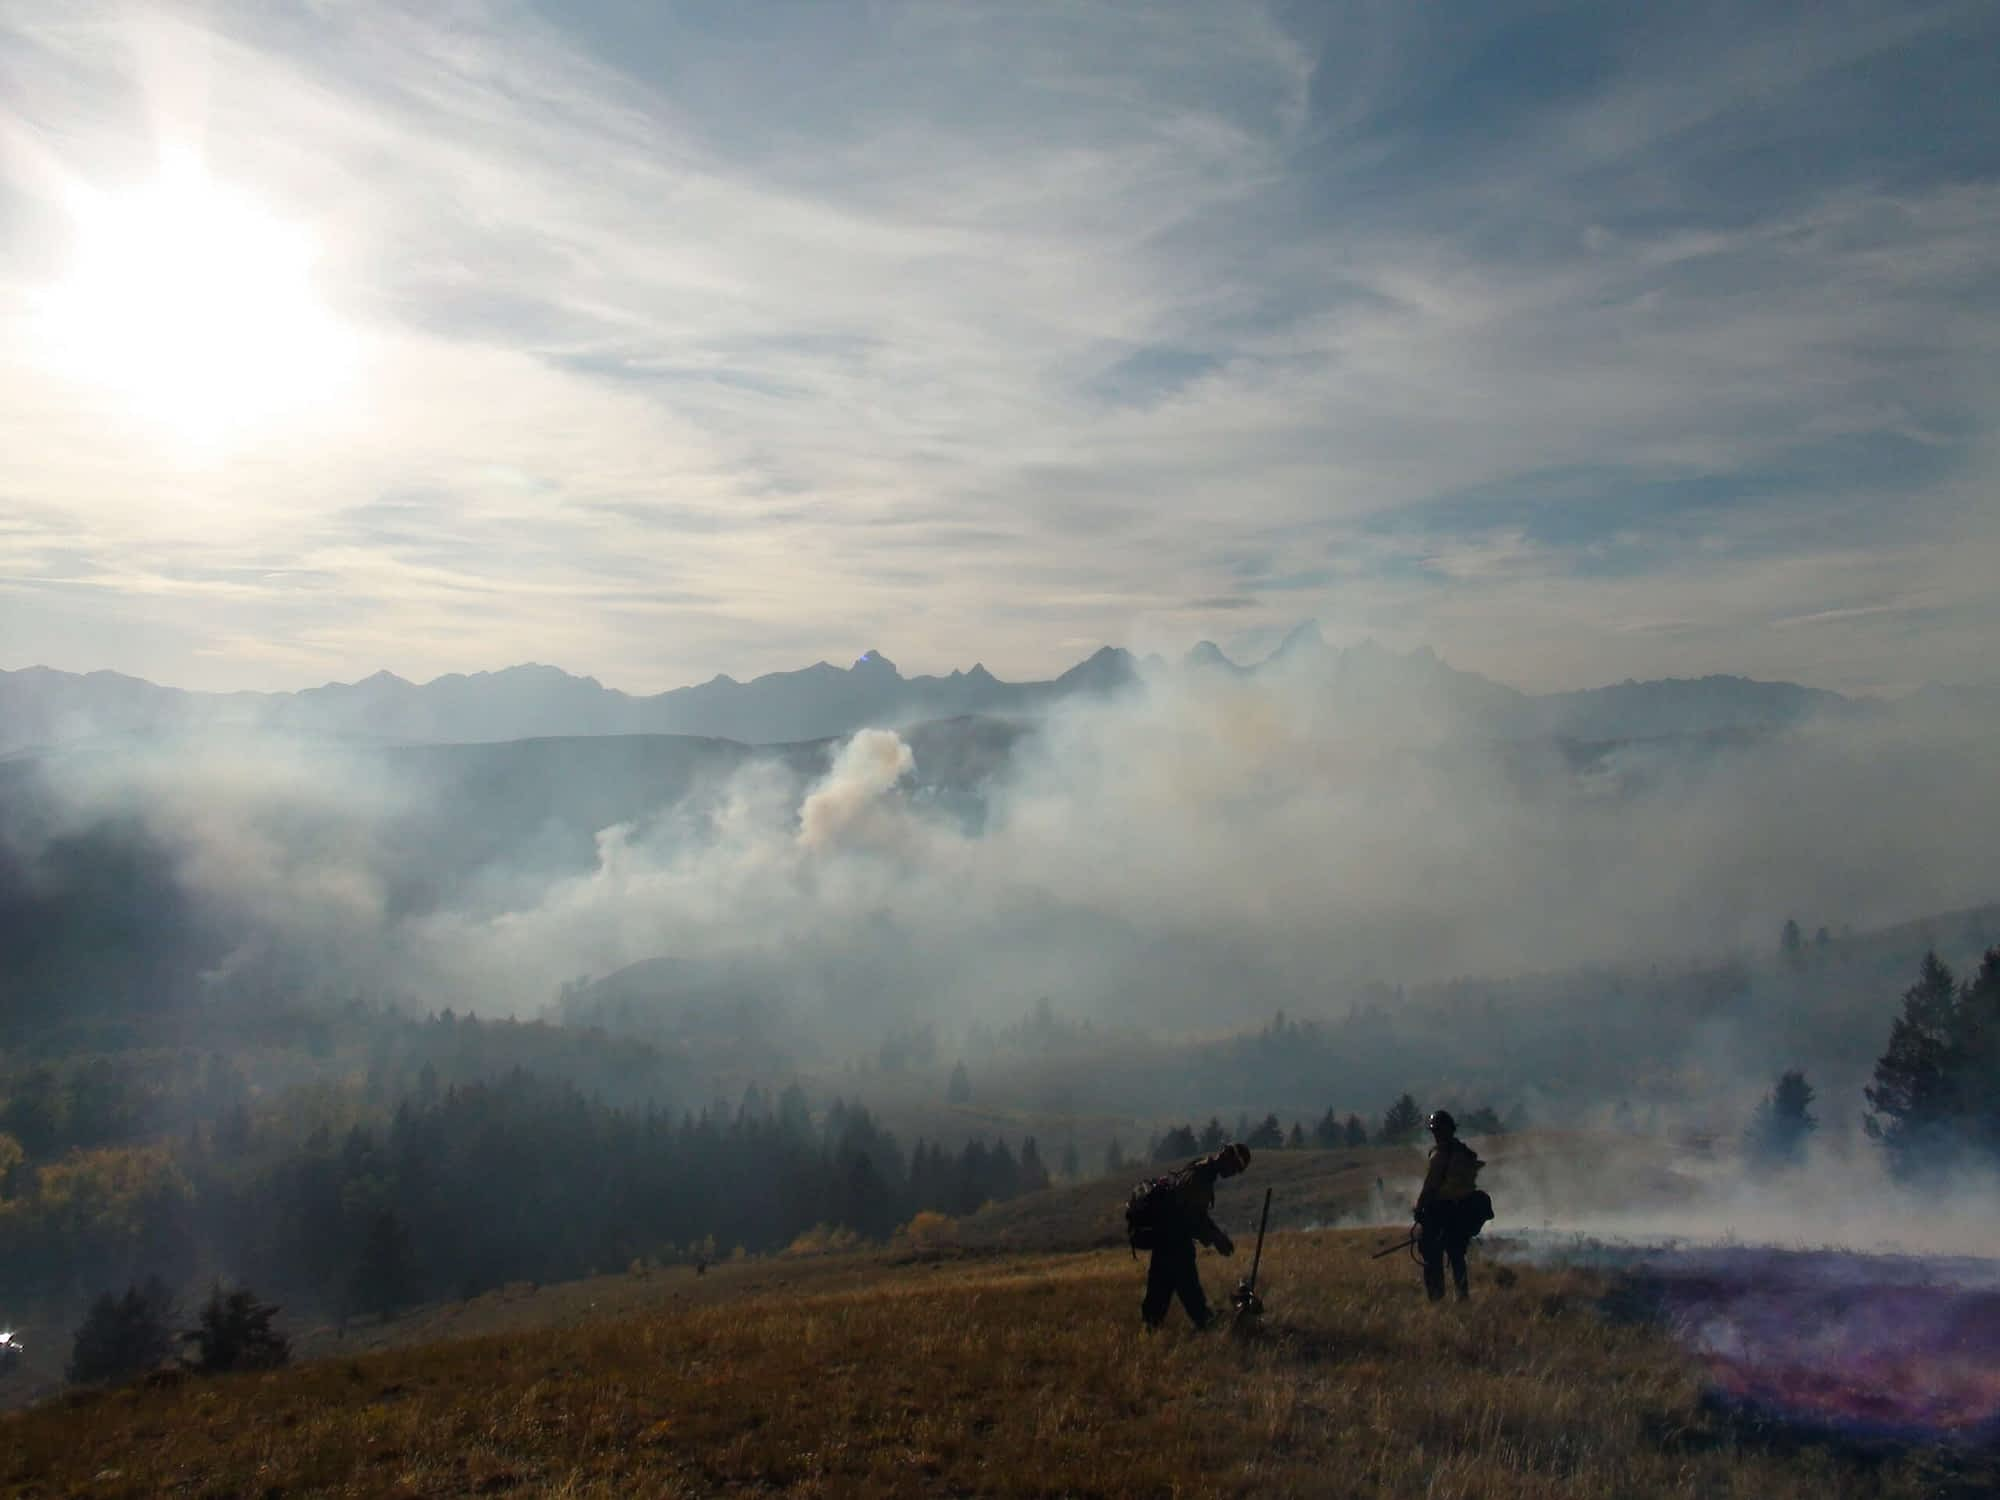 Prescribed burn scheduled at four locations in Jackson Hole